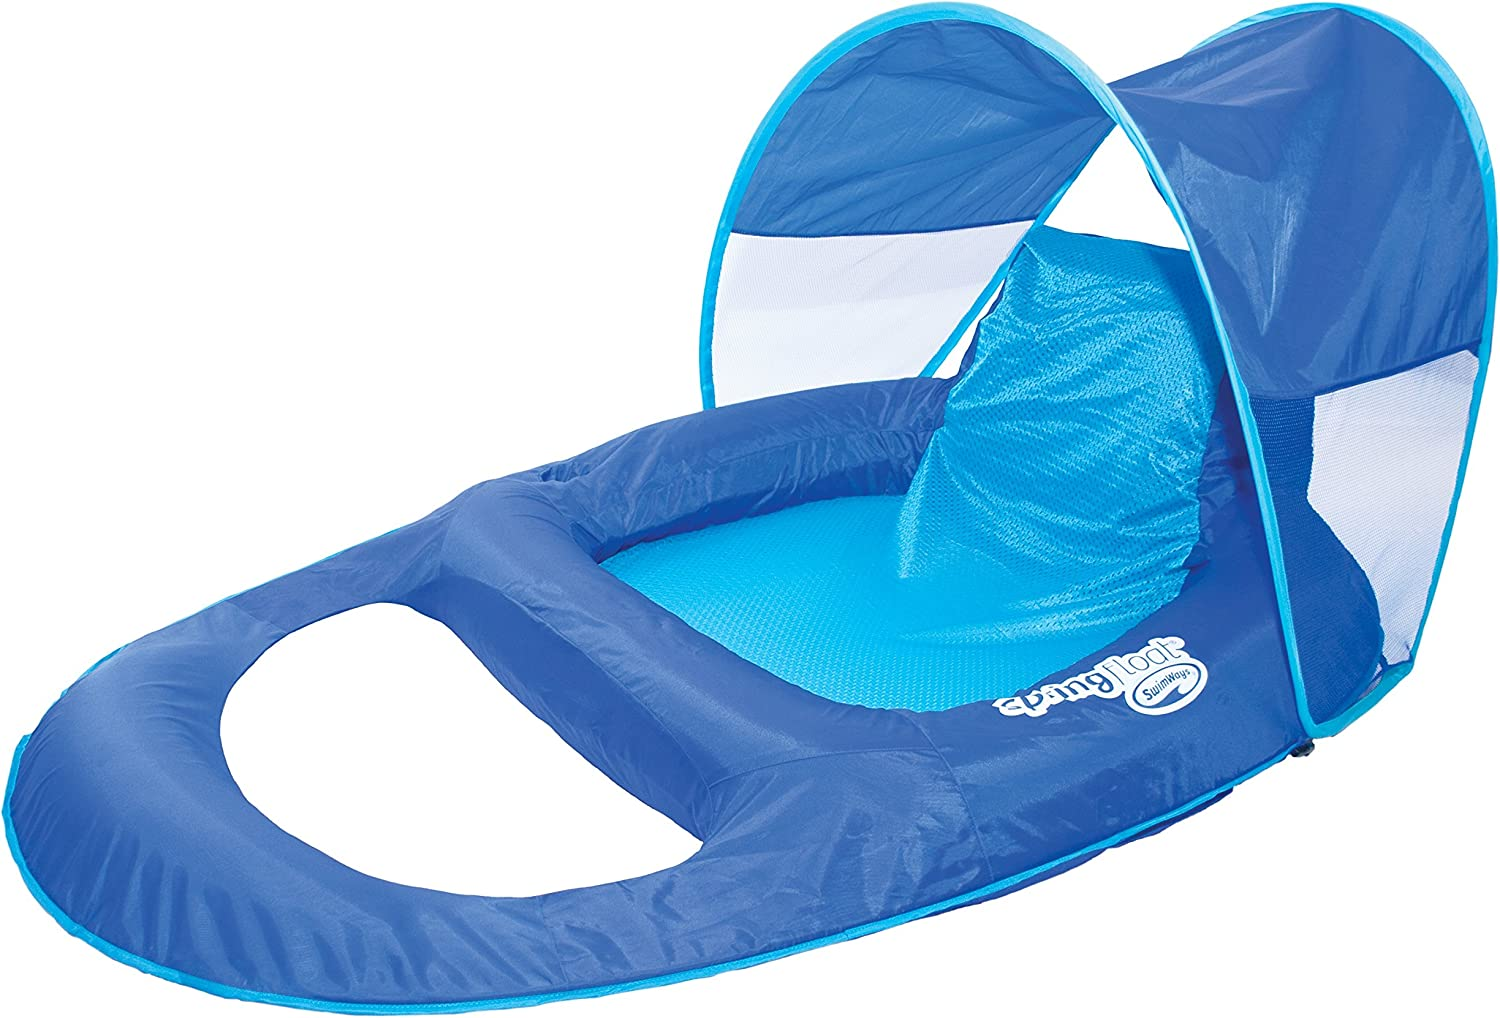 SwimWays Spring Float Recliner with Canopy - Swim Lounger for Pool or Lake